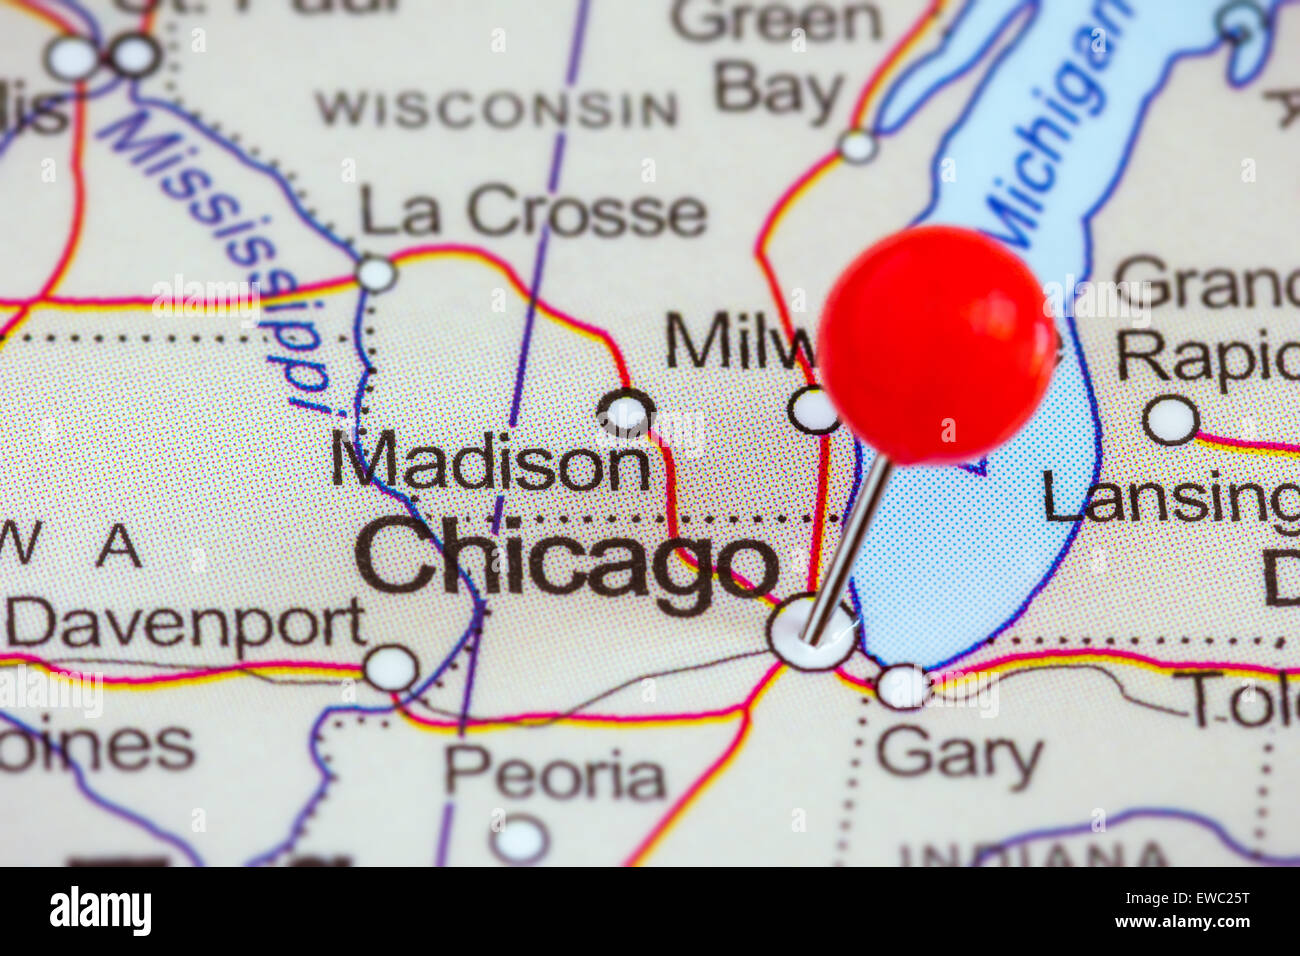 Map Of Chicago Stock Photos & Map Of Chicago Stock Images ... Chicago On Map on chicago city, chicago on media, chicago blue line map, chicago illinois, chicago street map, chicago attractions, seattle map, chicago area map suburbs, chicago united states map, lincoln park chicago map, chicago neighborhoods, north chicago il map, chicago usa map, chicago home, philadelphia map, crystal lake chicago map, chicago highlights, san francisco bus map, chicago airport map,